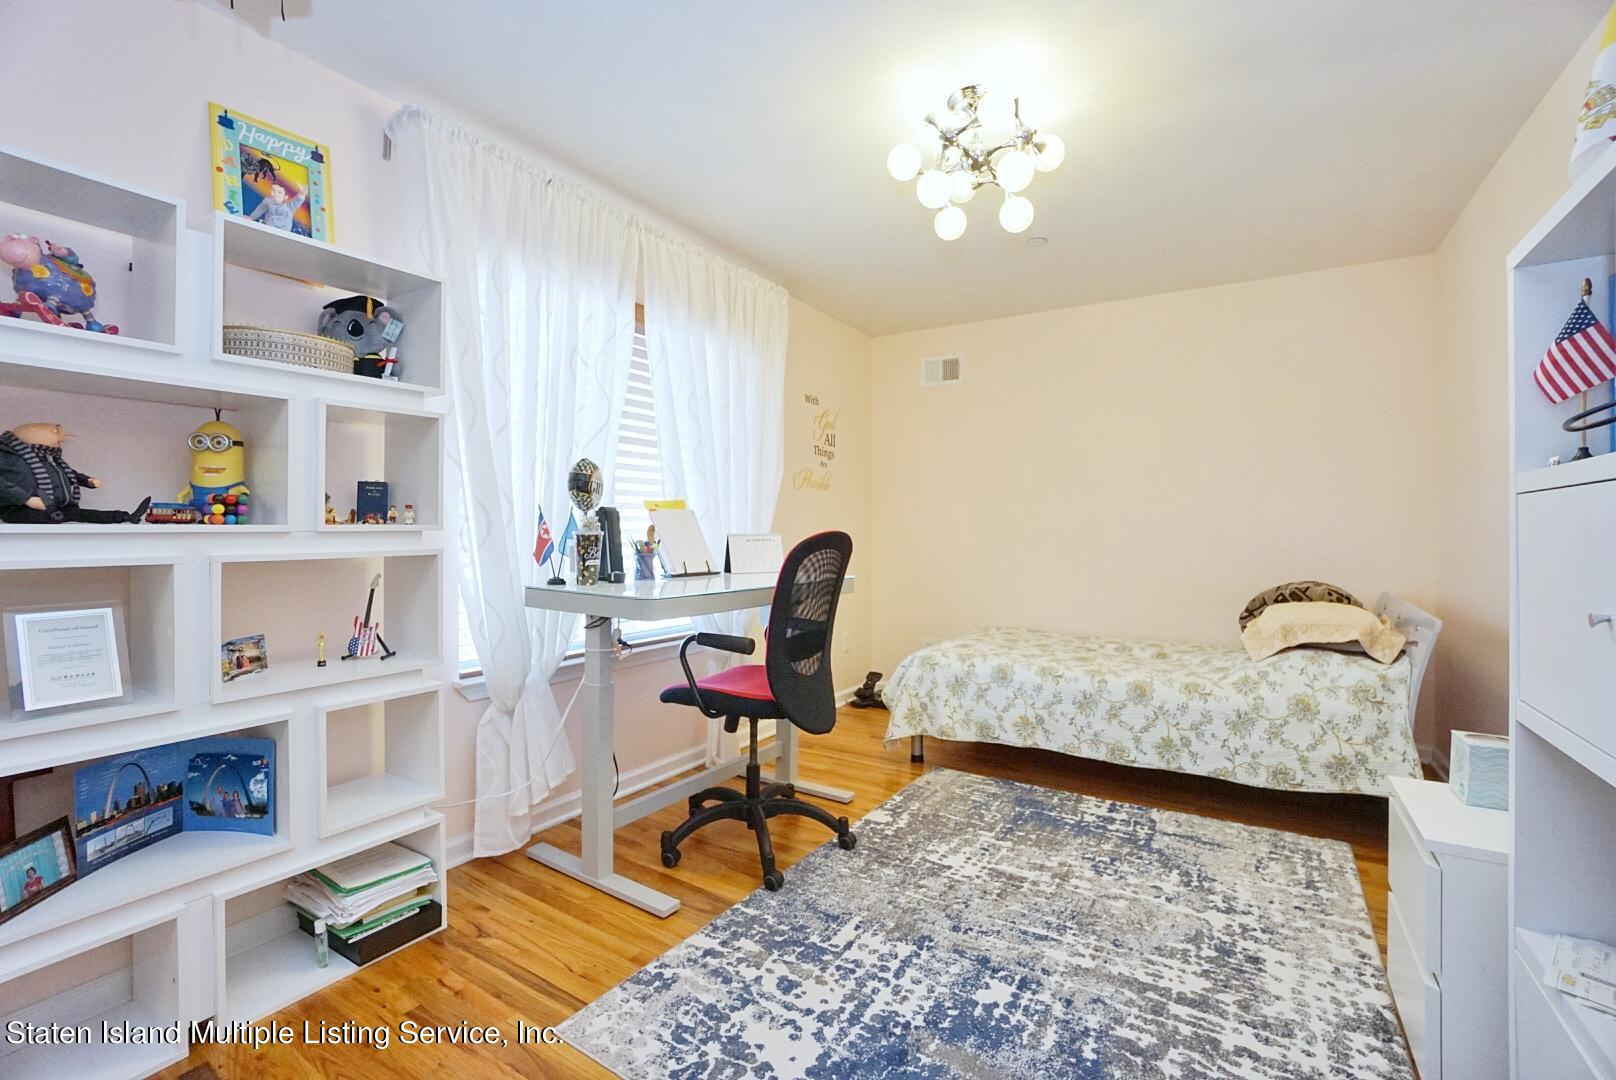 Single Family - Detached 171 Benziger Avenue  Staten Island, NY 10301, MLS-1145235-25